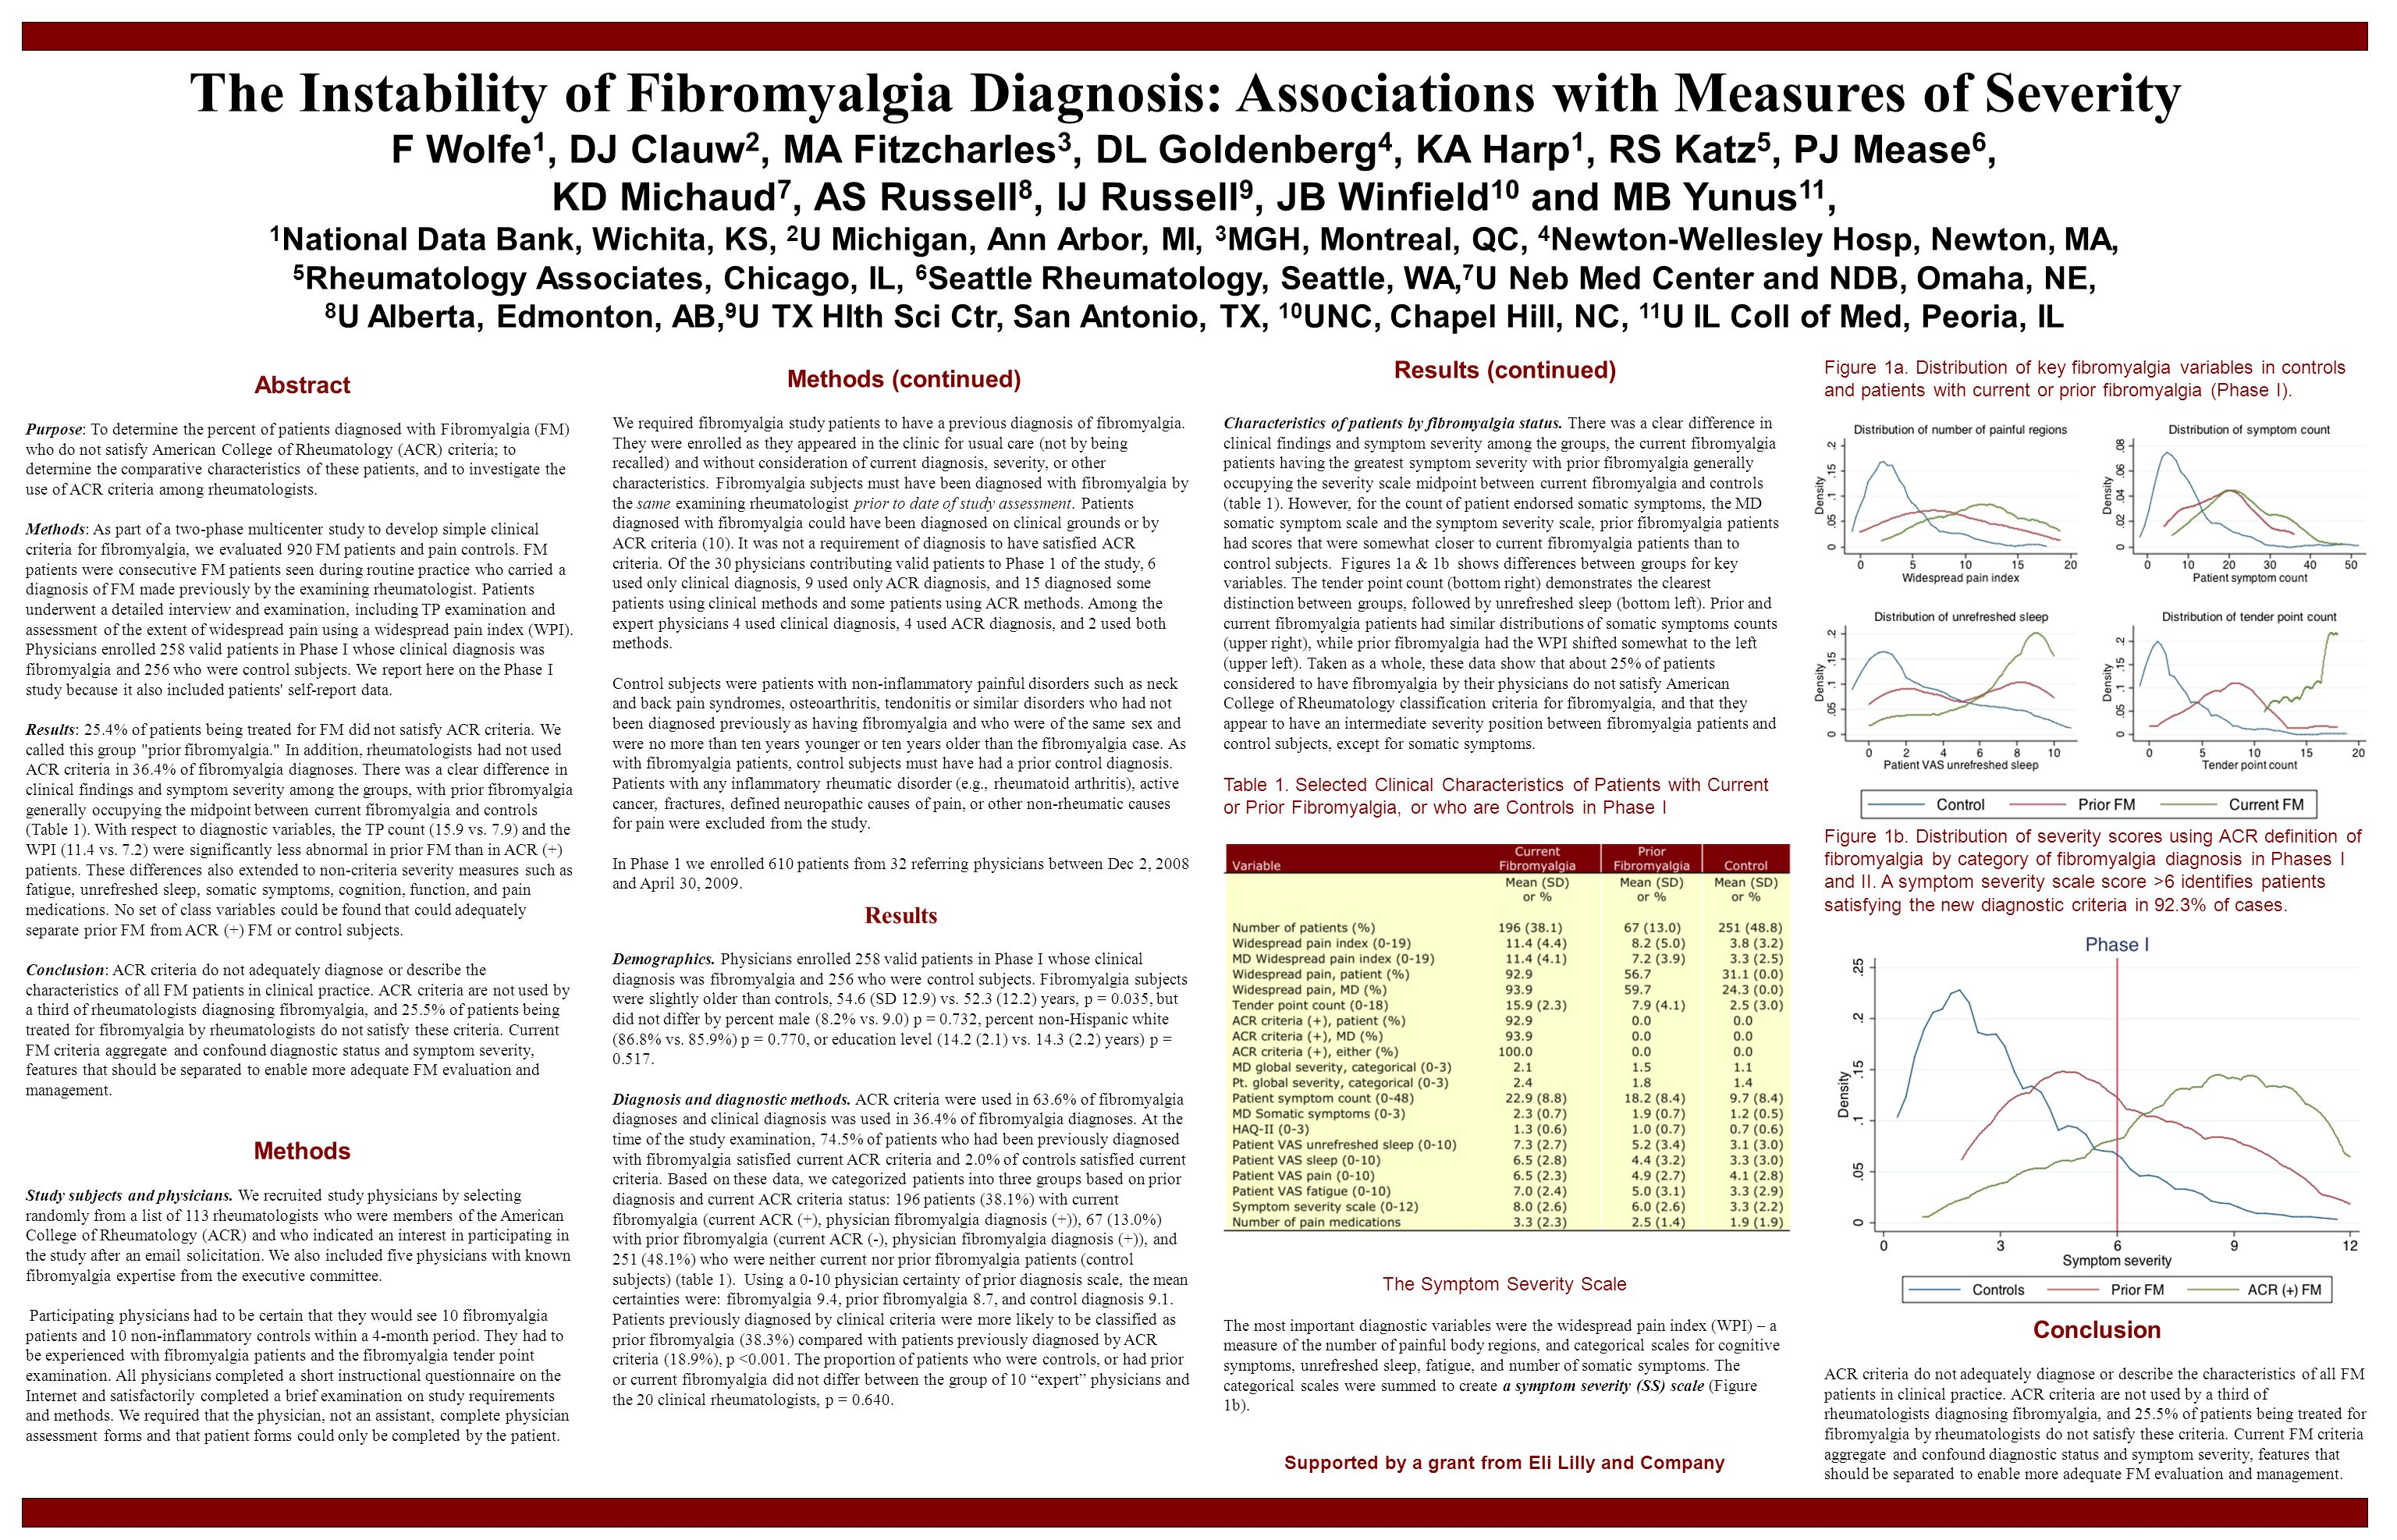 The Instability of Fibromyalgia Diagnosis: Associations with Measures of Severity F Wolfe 1, DJ Clauw 2, MA Fitzcharles 3, DL Goldenberg 4, KA Harp 1,